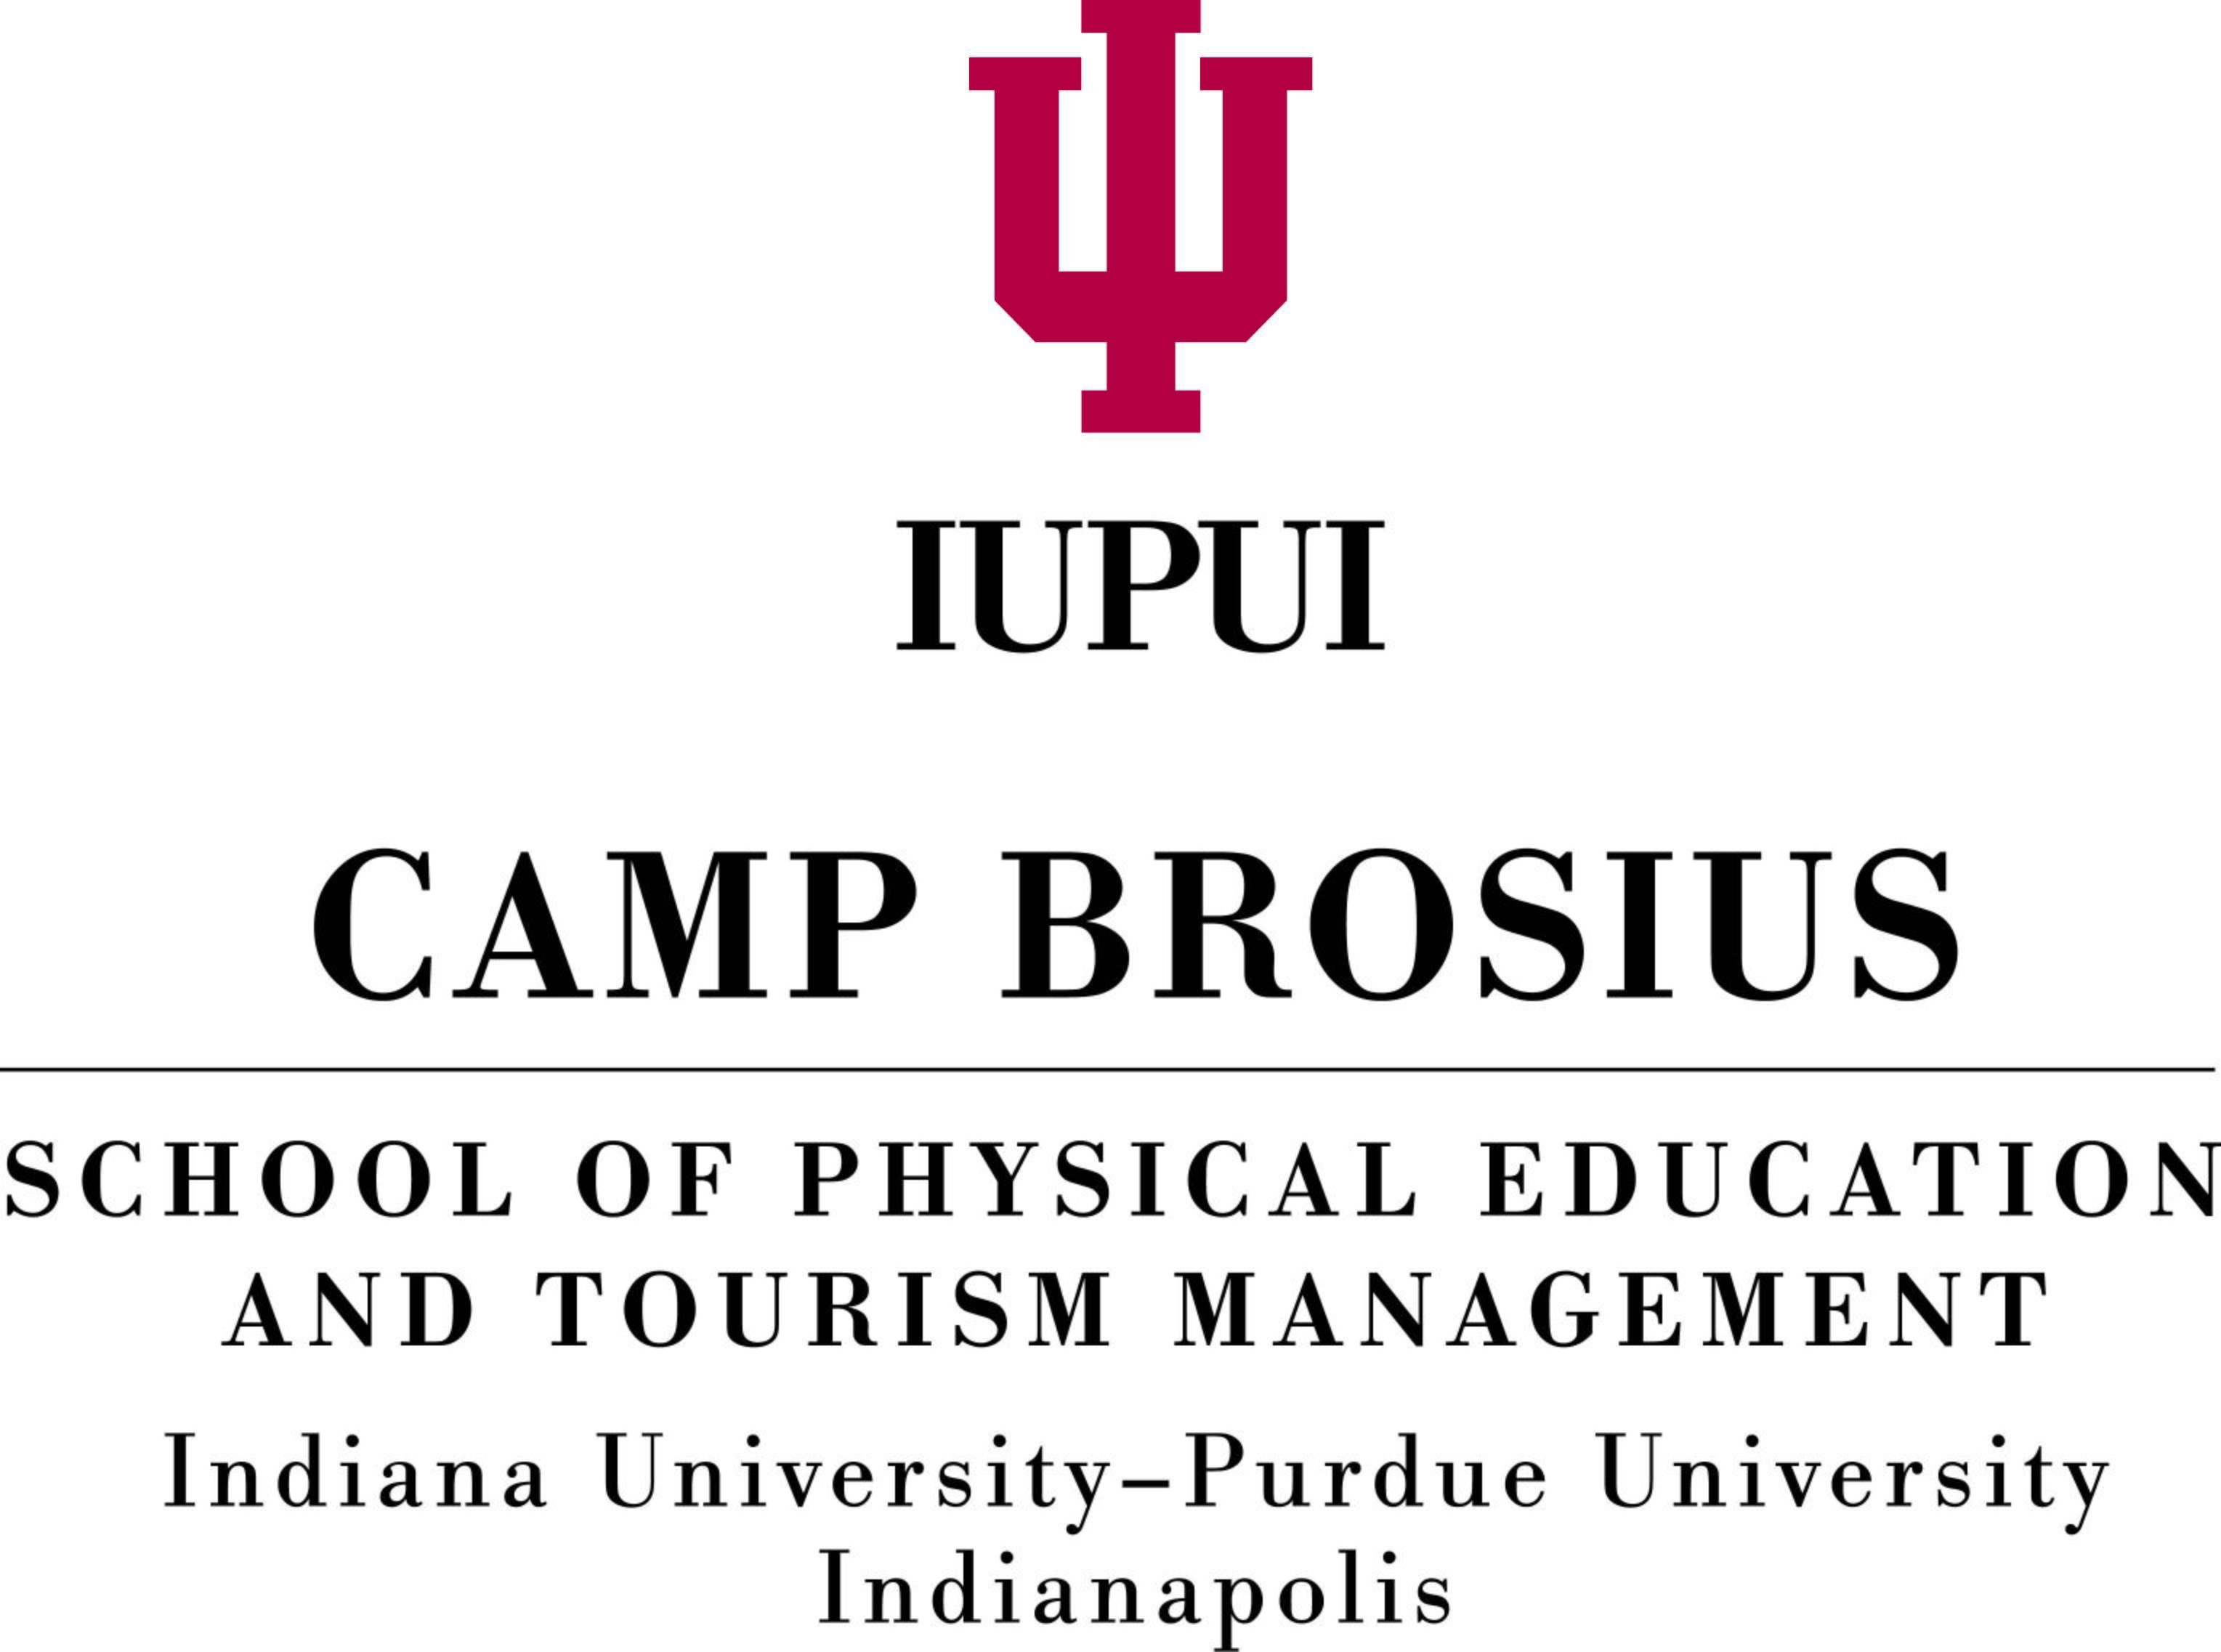 Camp Brosius-Indiana University